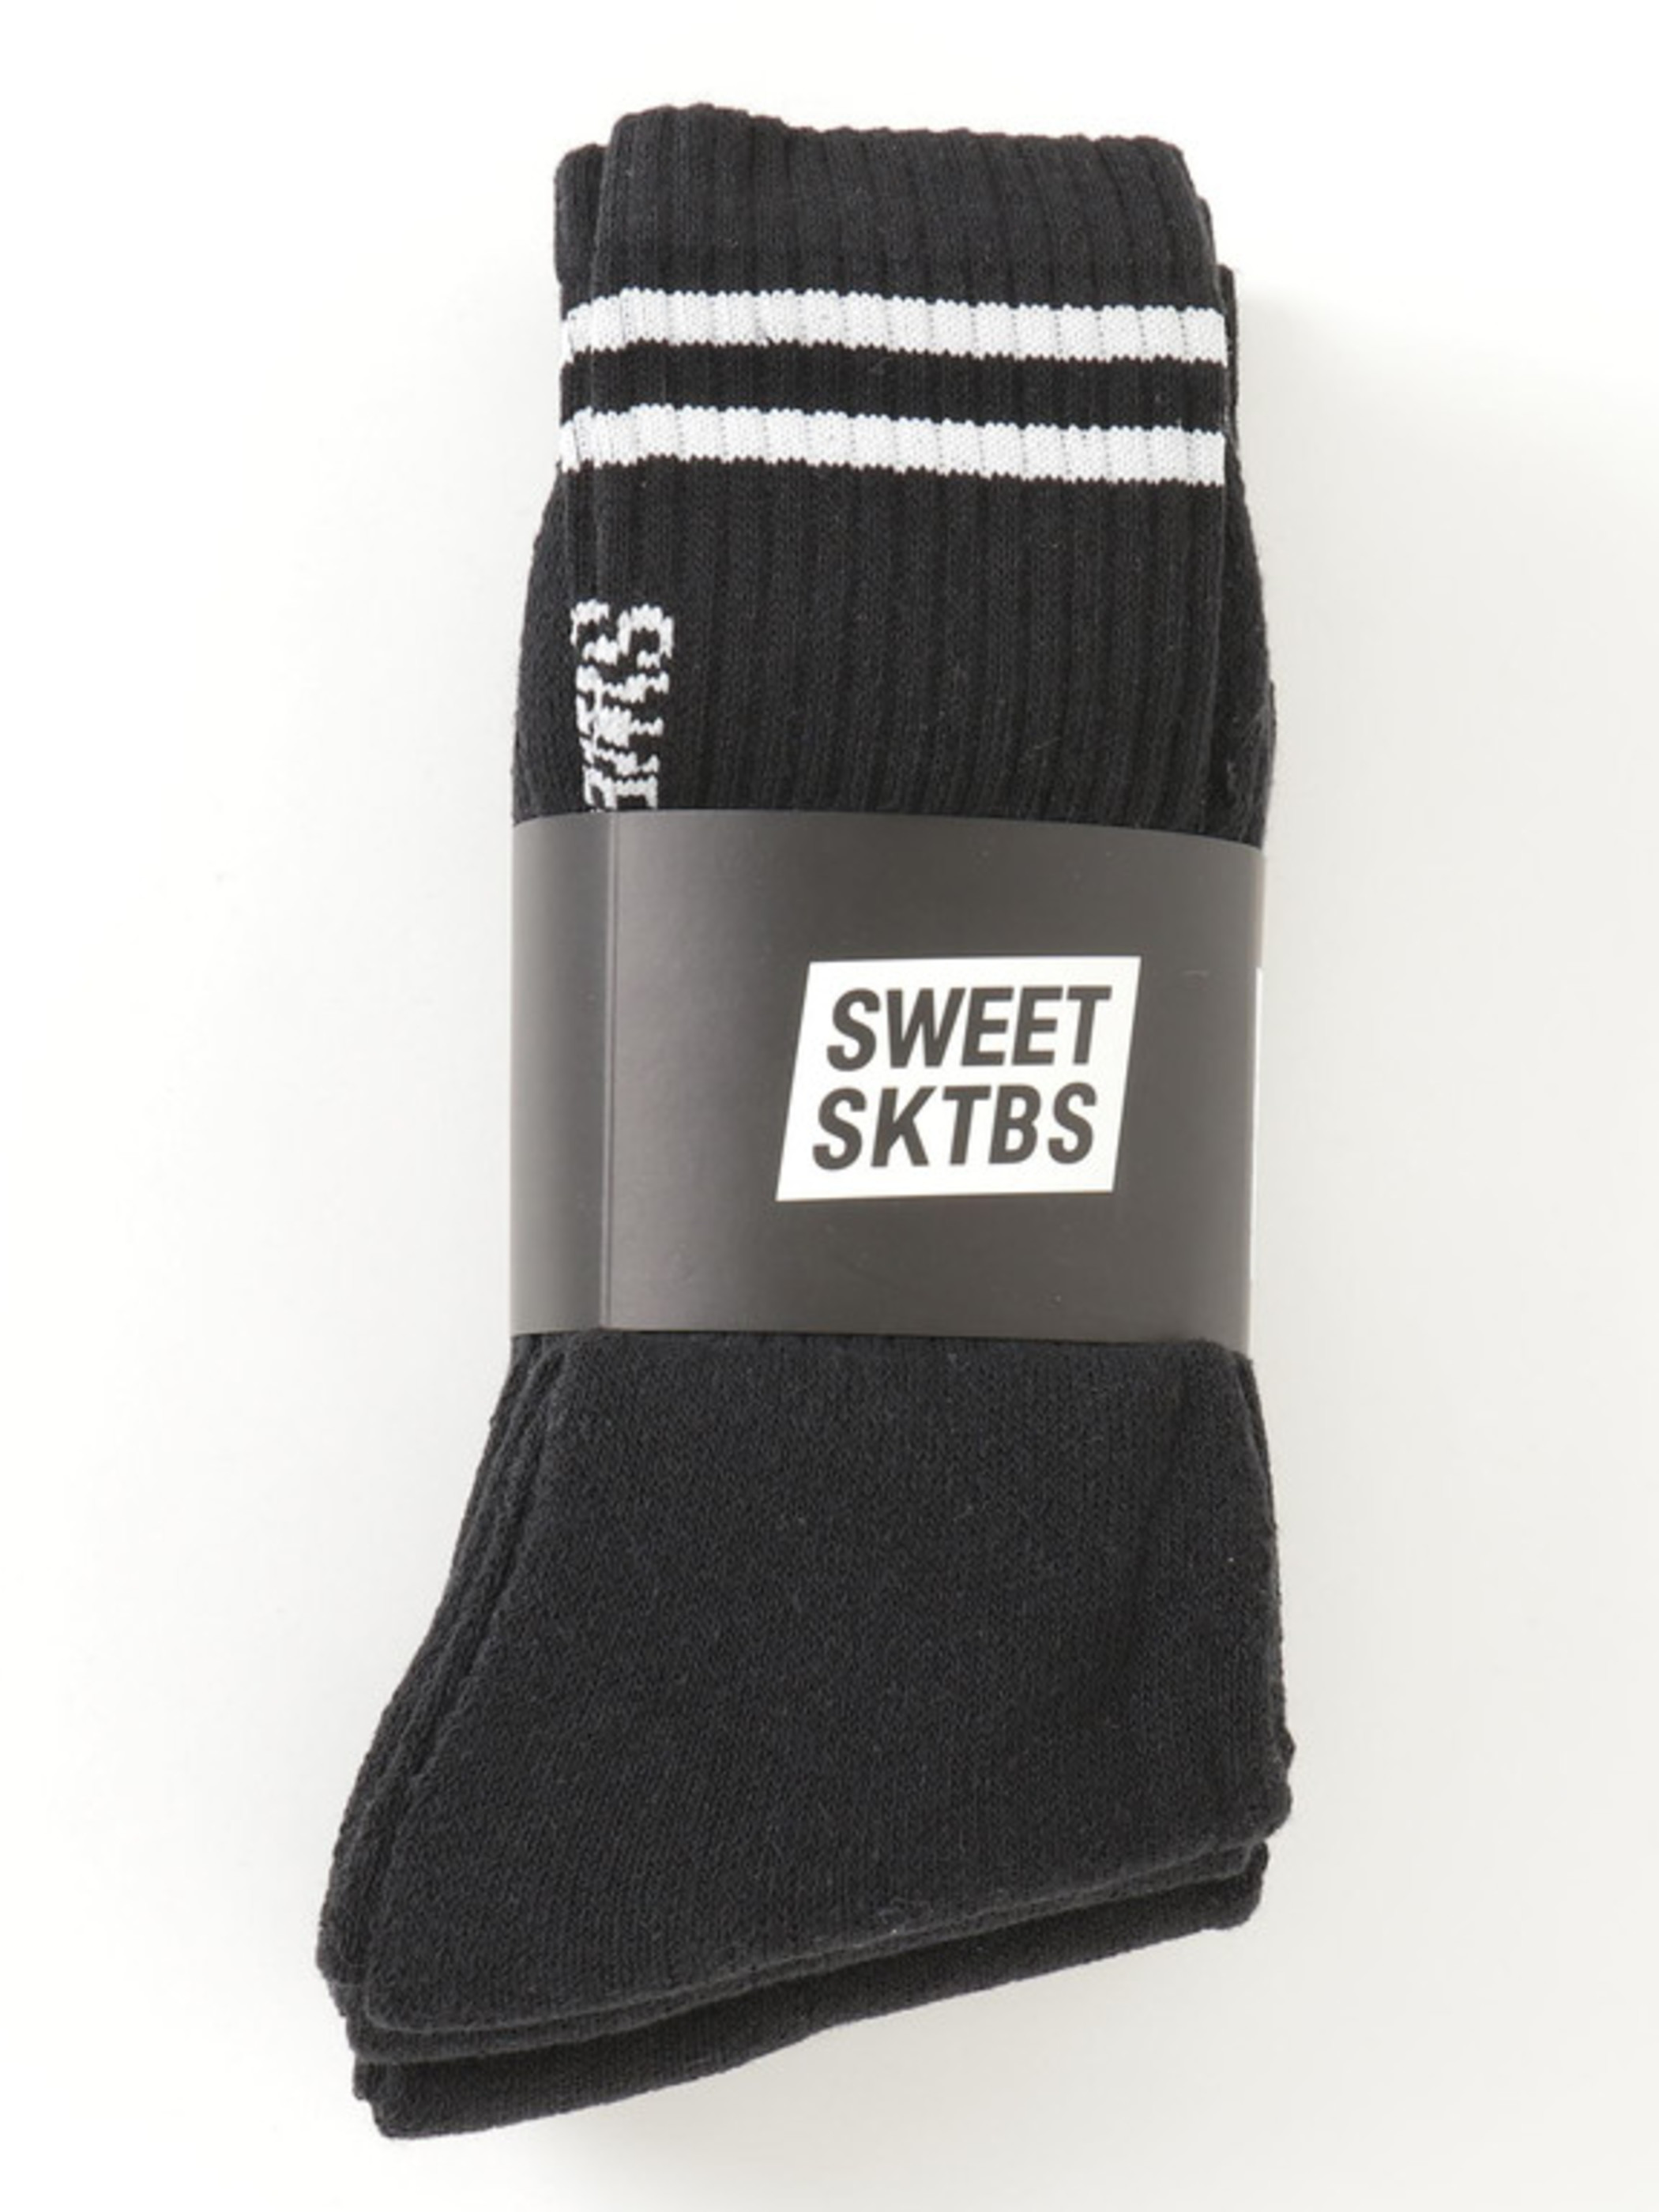 【NEW】SWEET SKTBS Socks Fade 5-pack